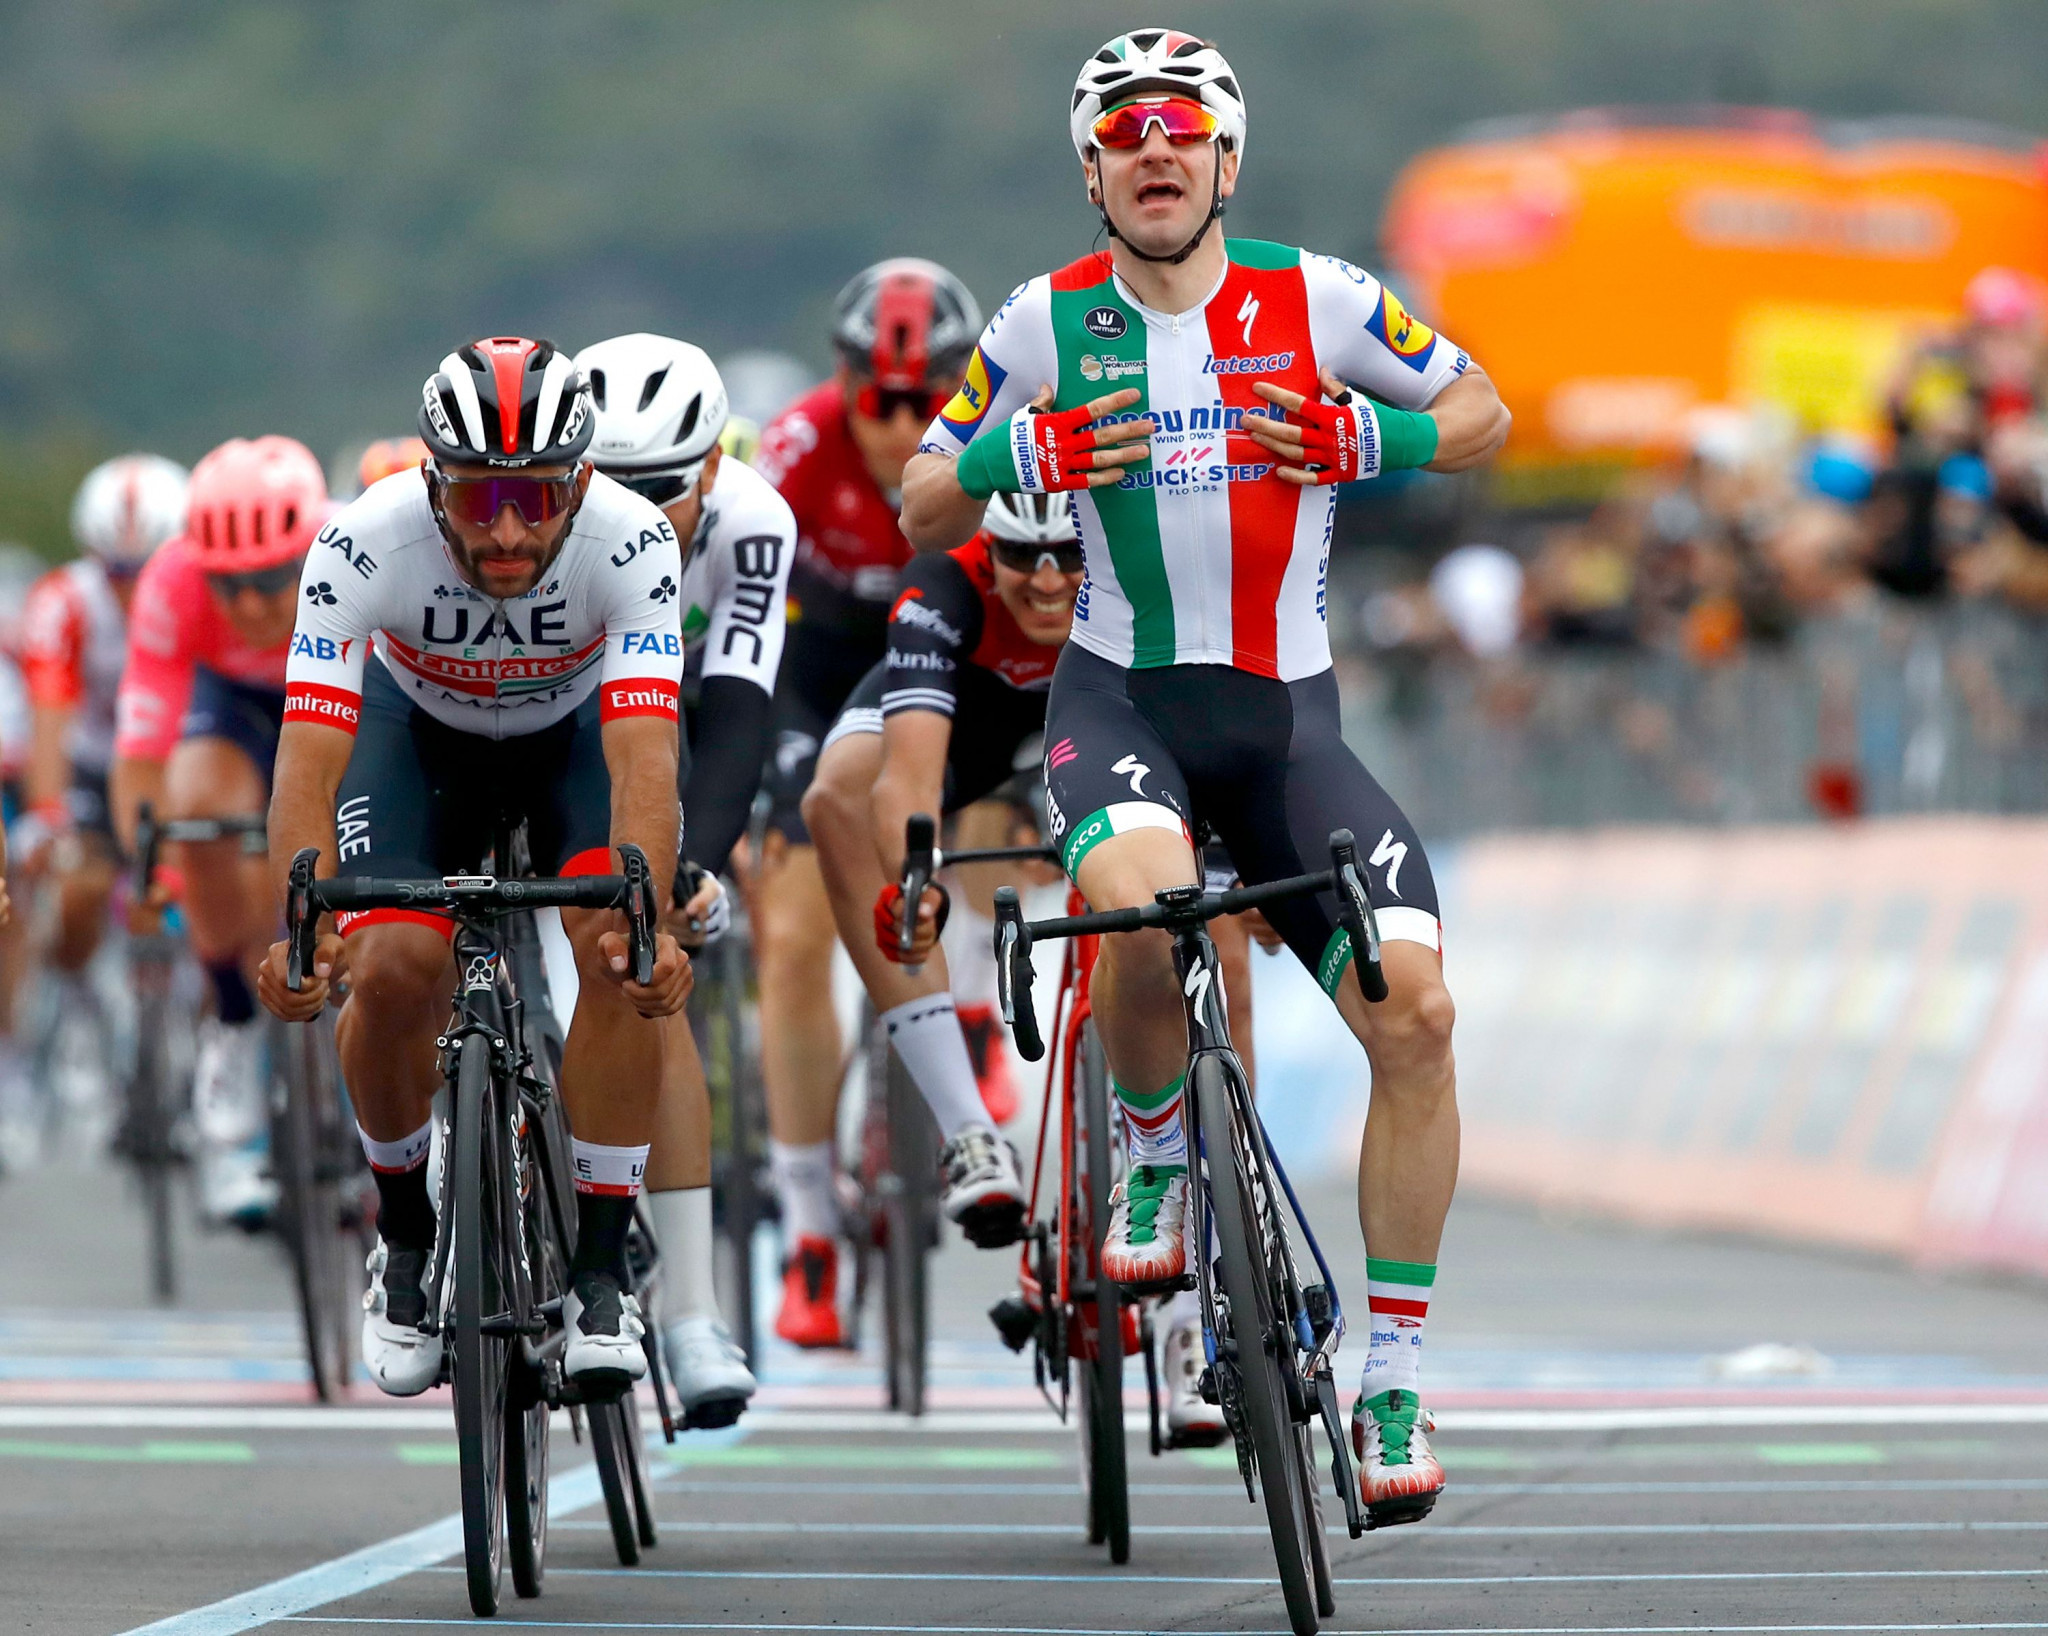 Home favourite Elia Viviani crossed the line first but was disqualified for dangerous riding ©Getty Images